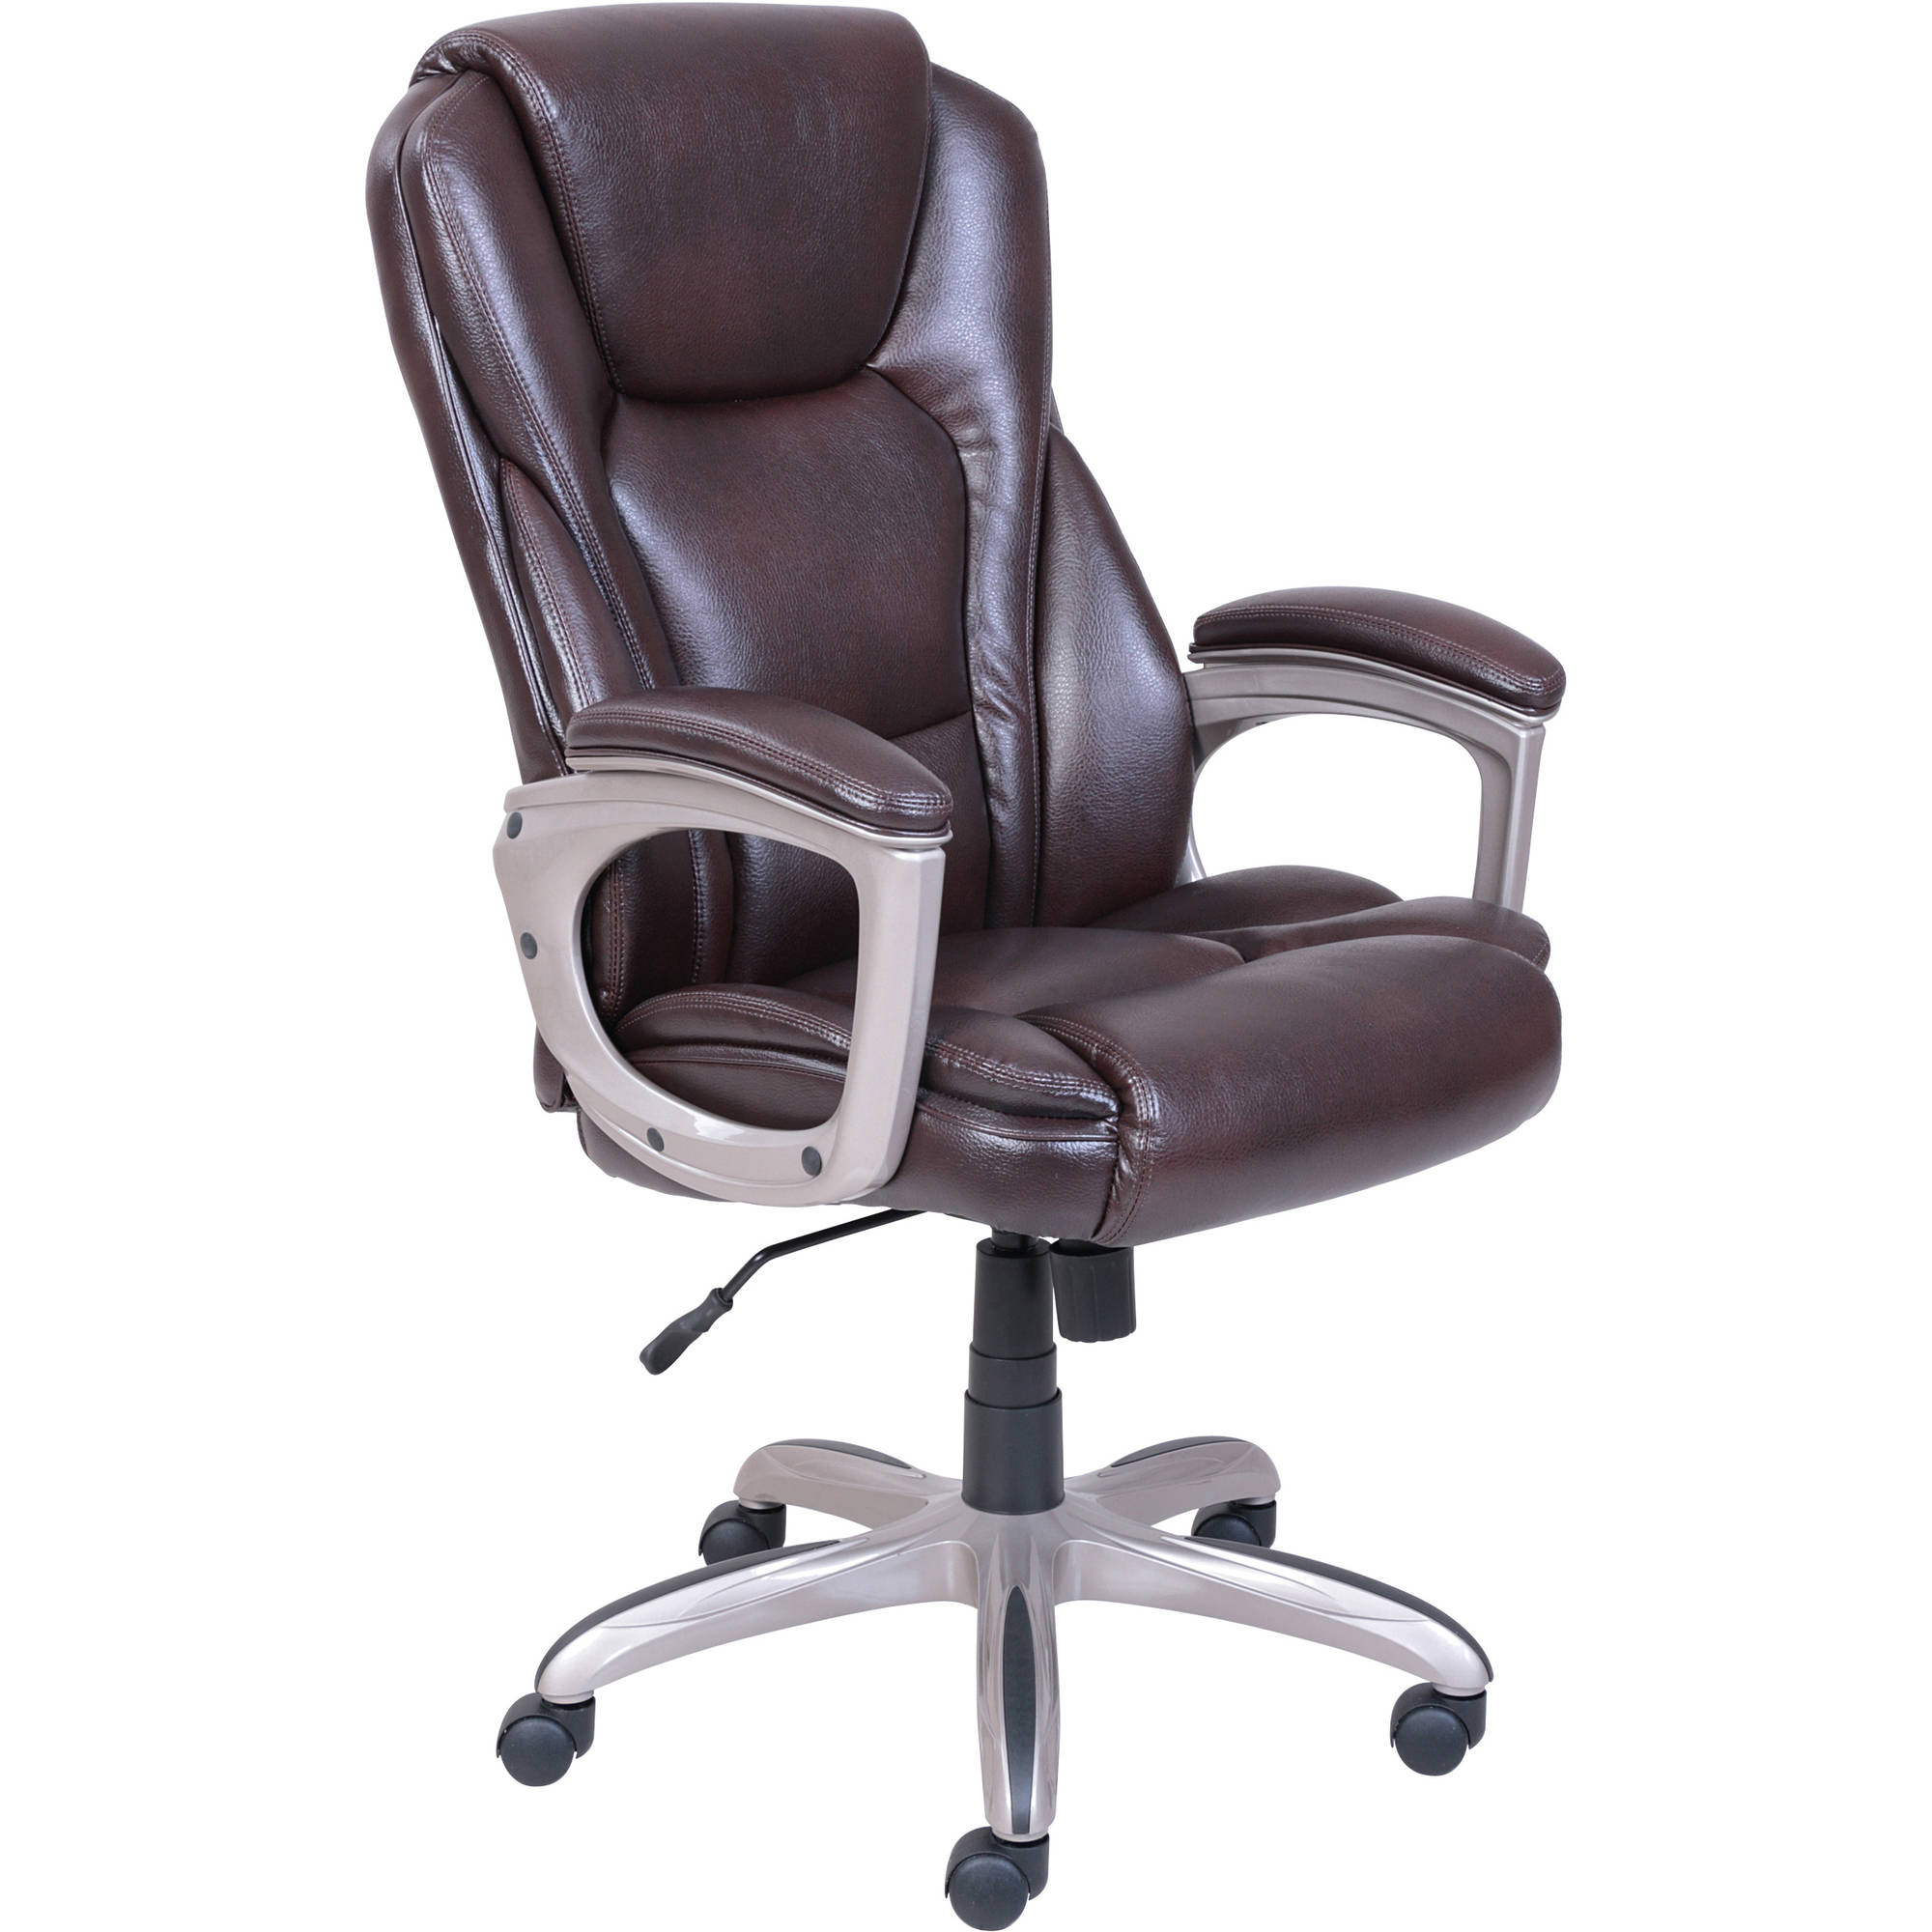 Serta Big Amp Tall Commercial Office Chair With